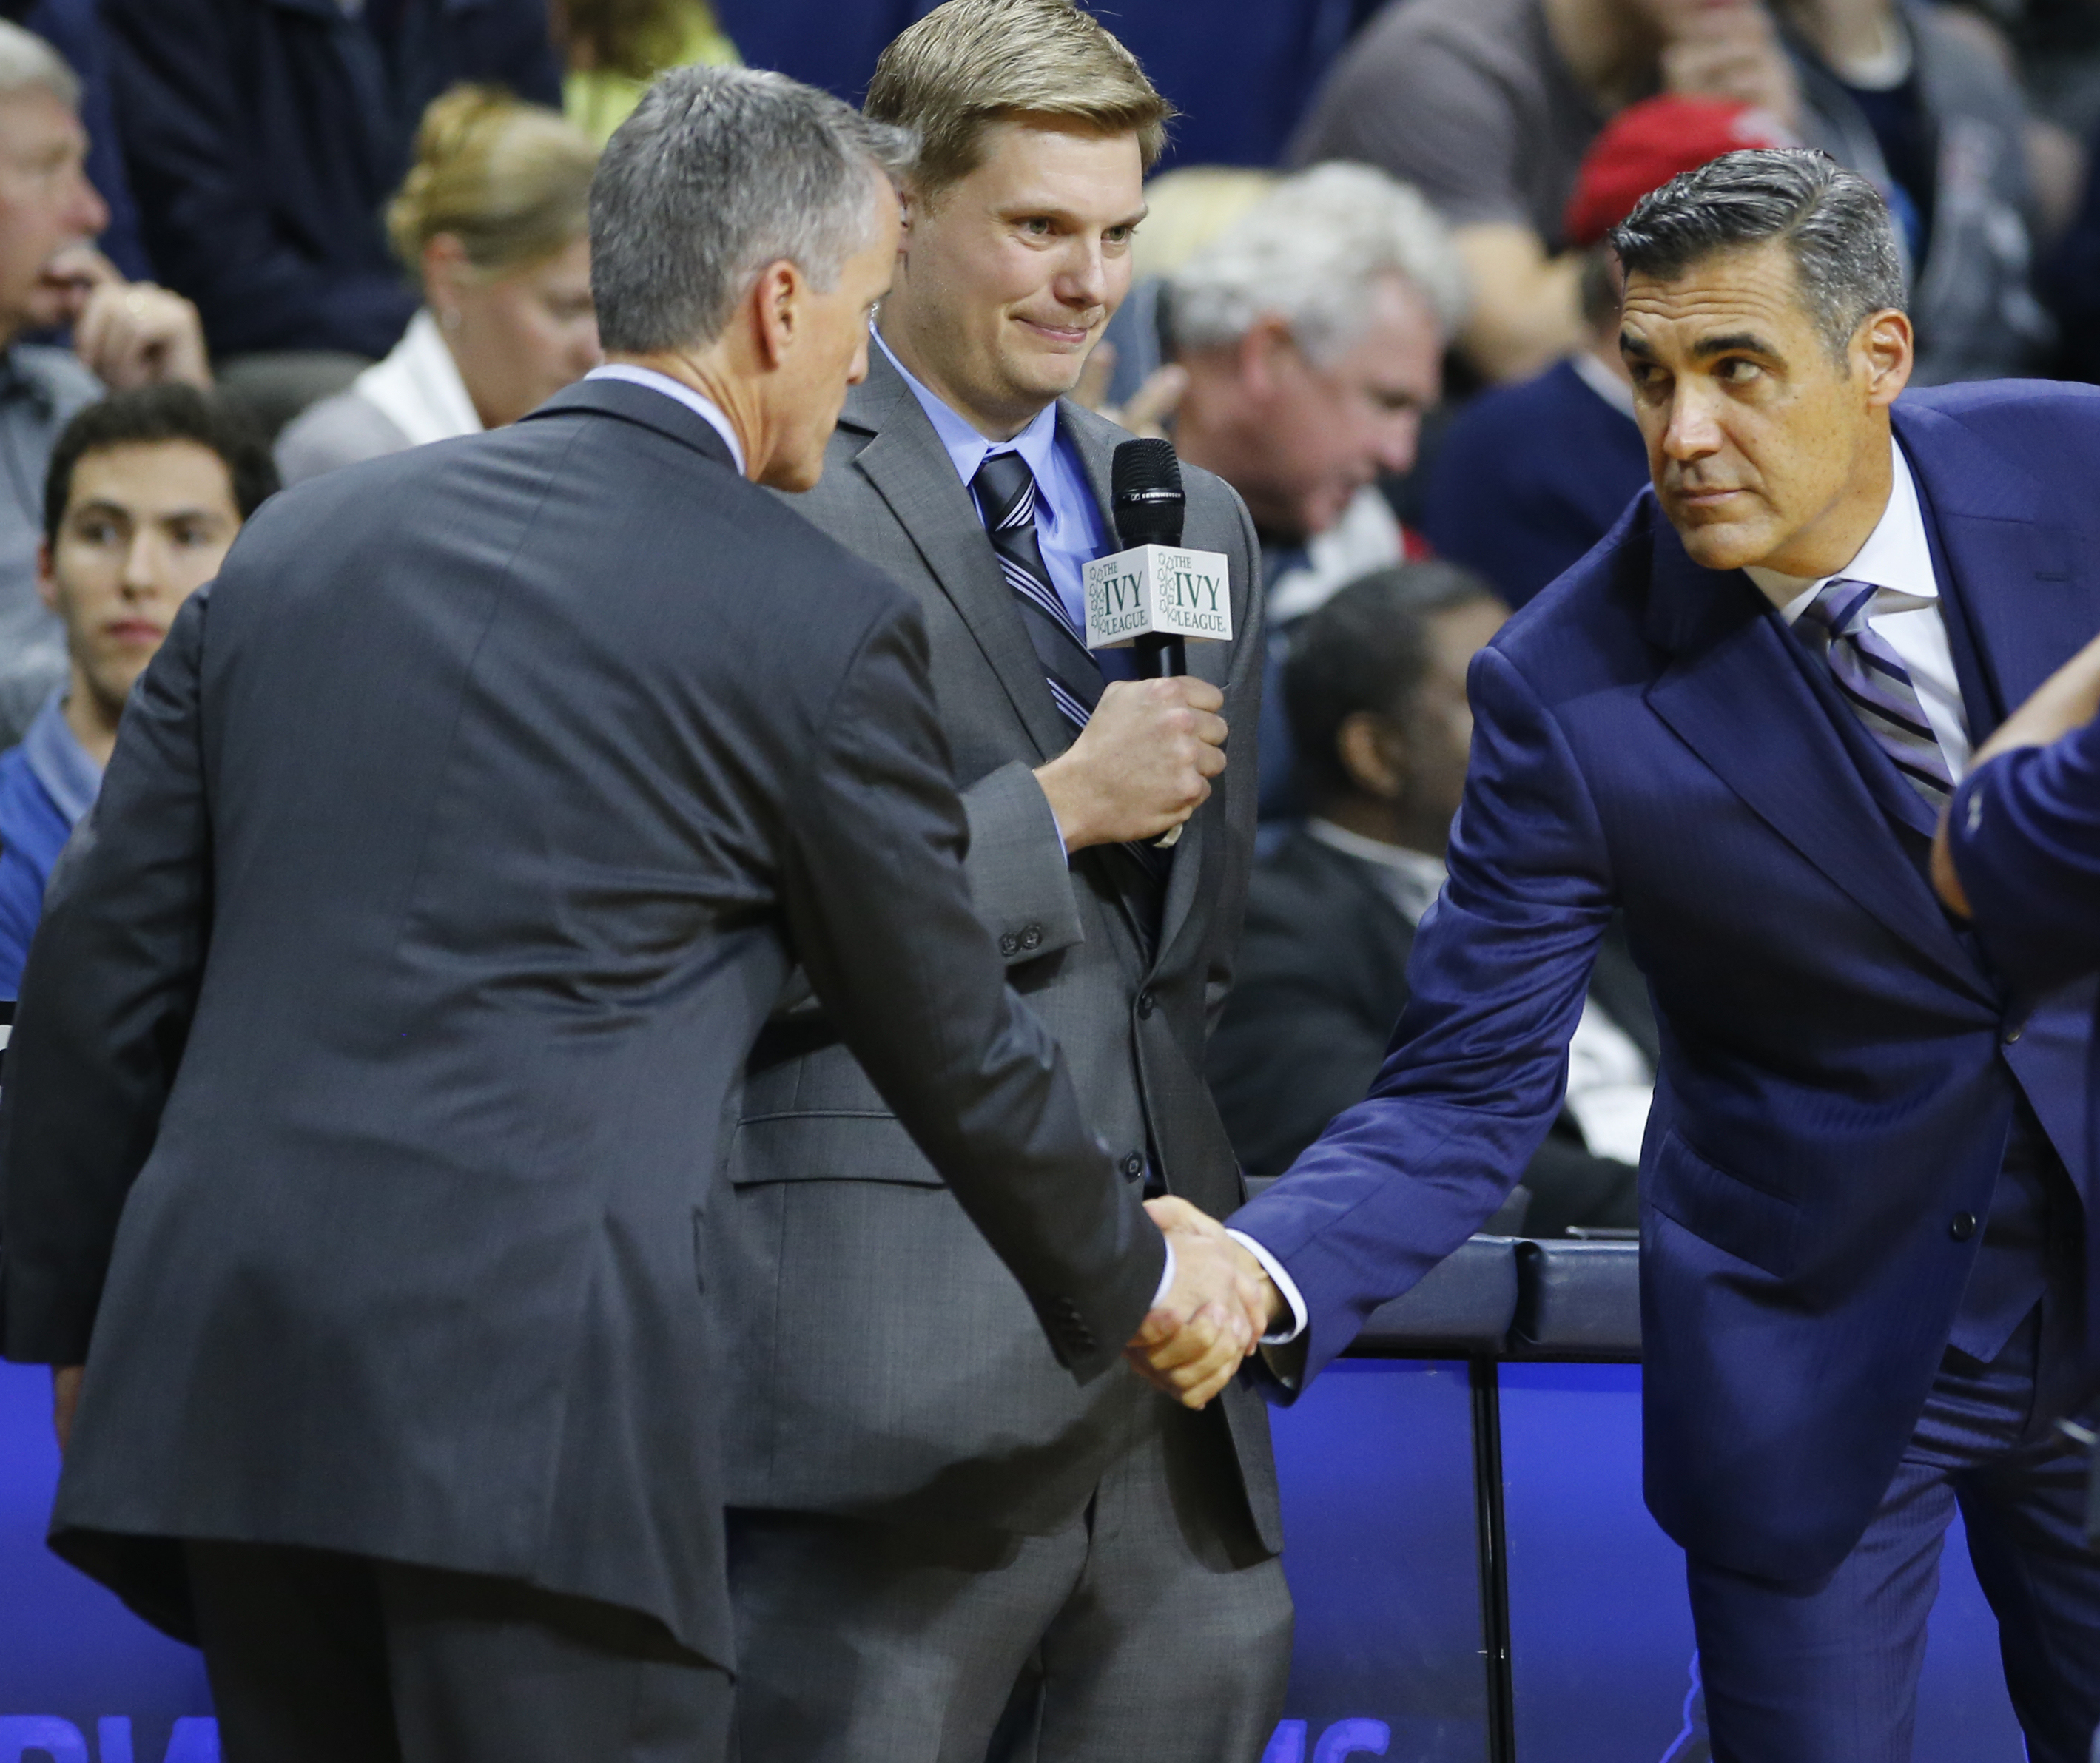 Head Coaches Steve Donahue (left) of Penn and Jay Wright (right) of Villanova shake hands before a game from last season.